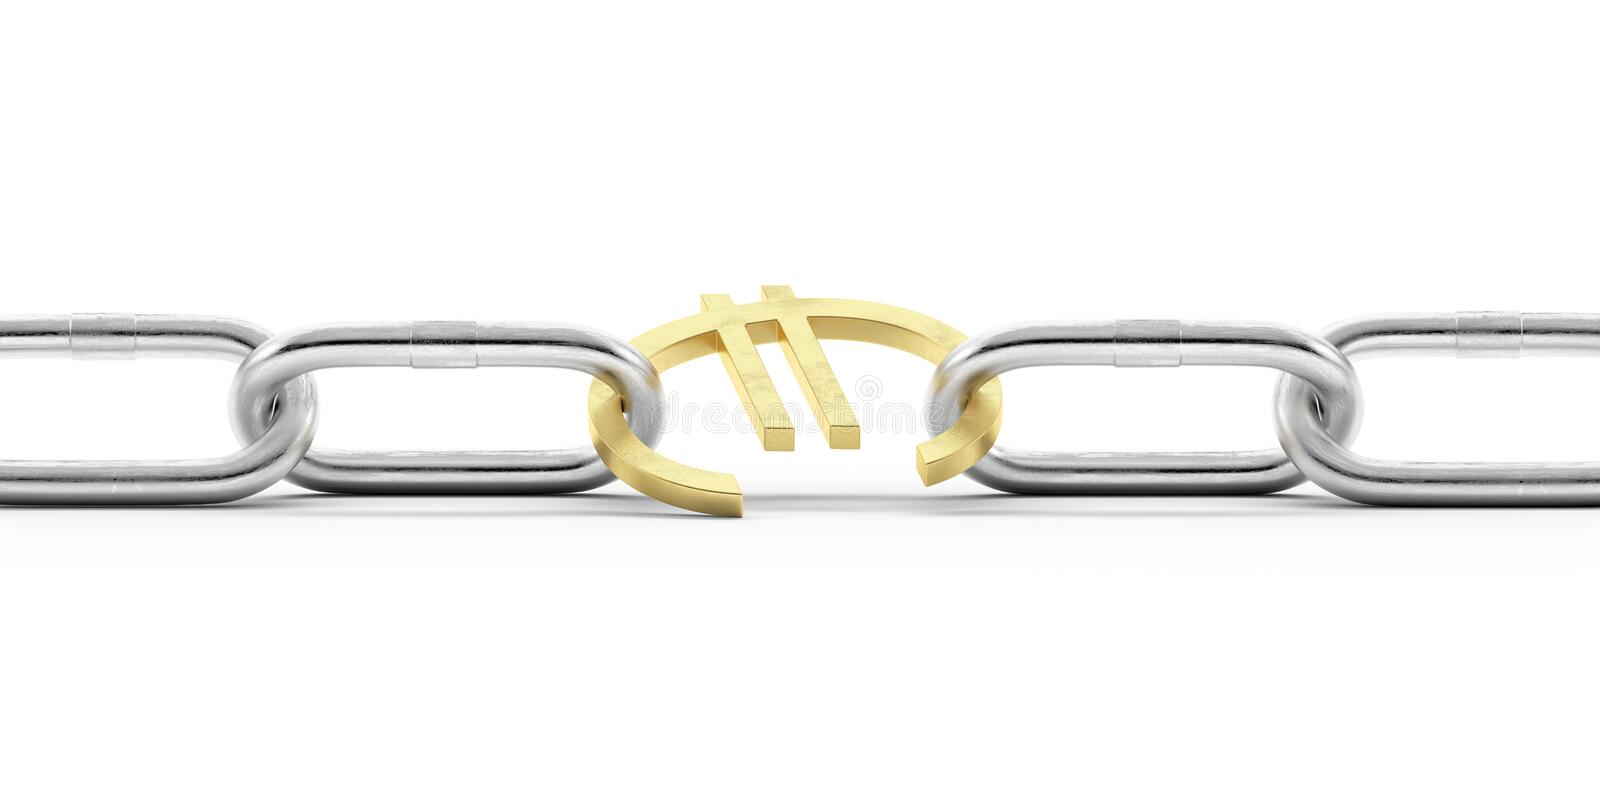 Euro Currency Symbol In Chains Stock Photo